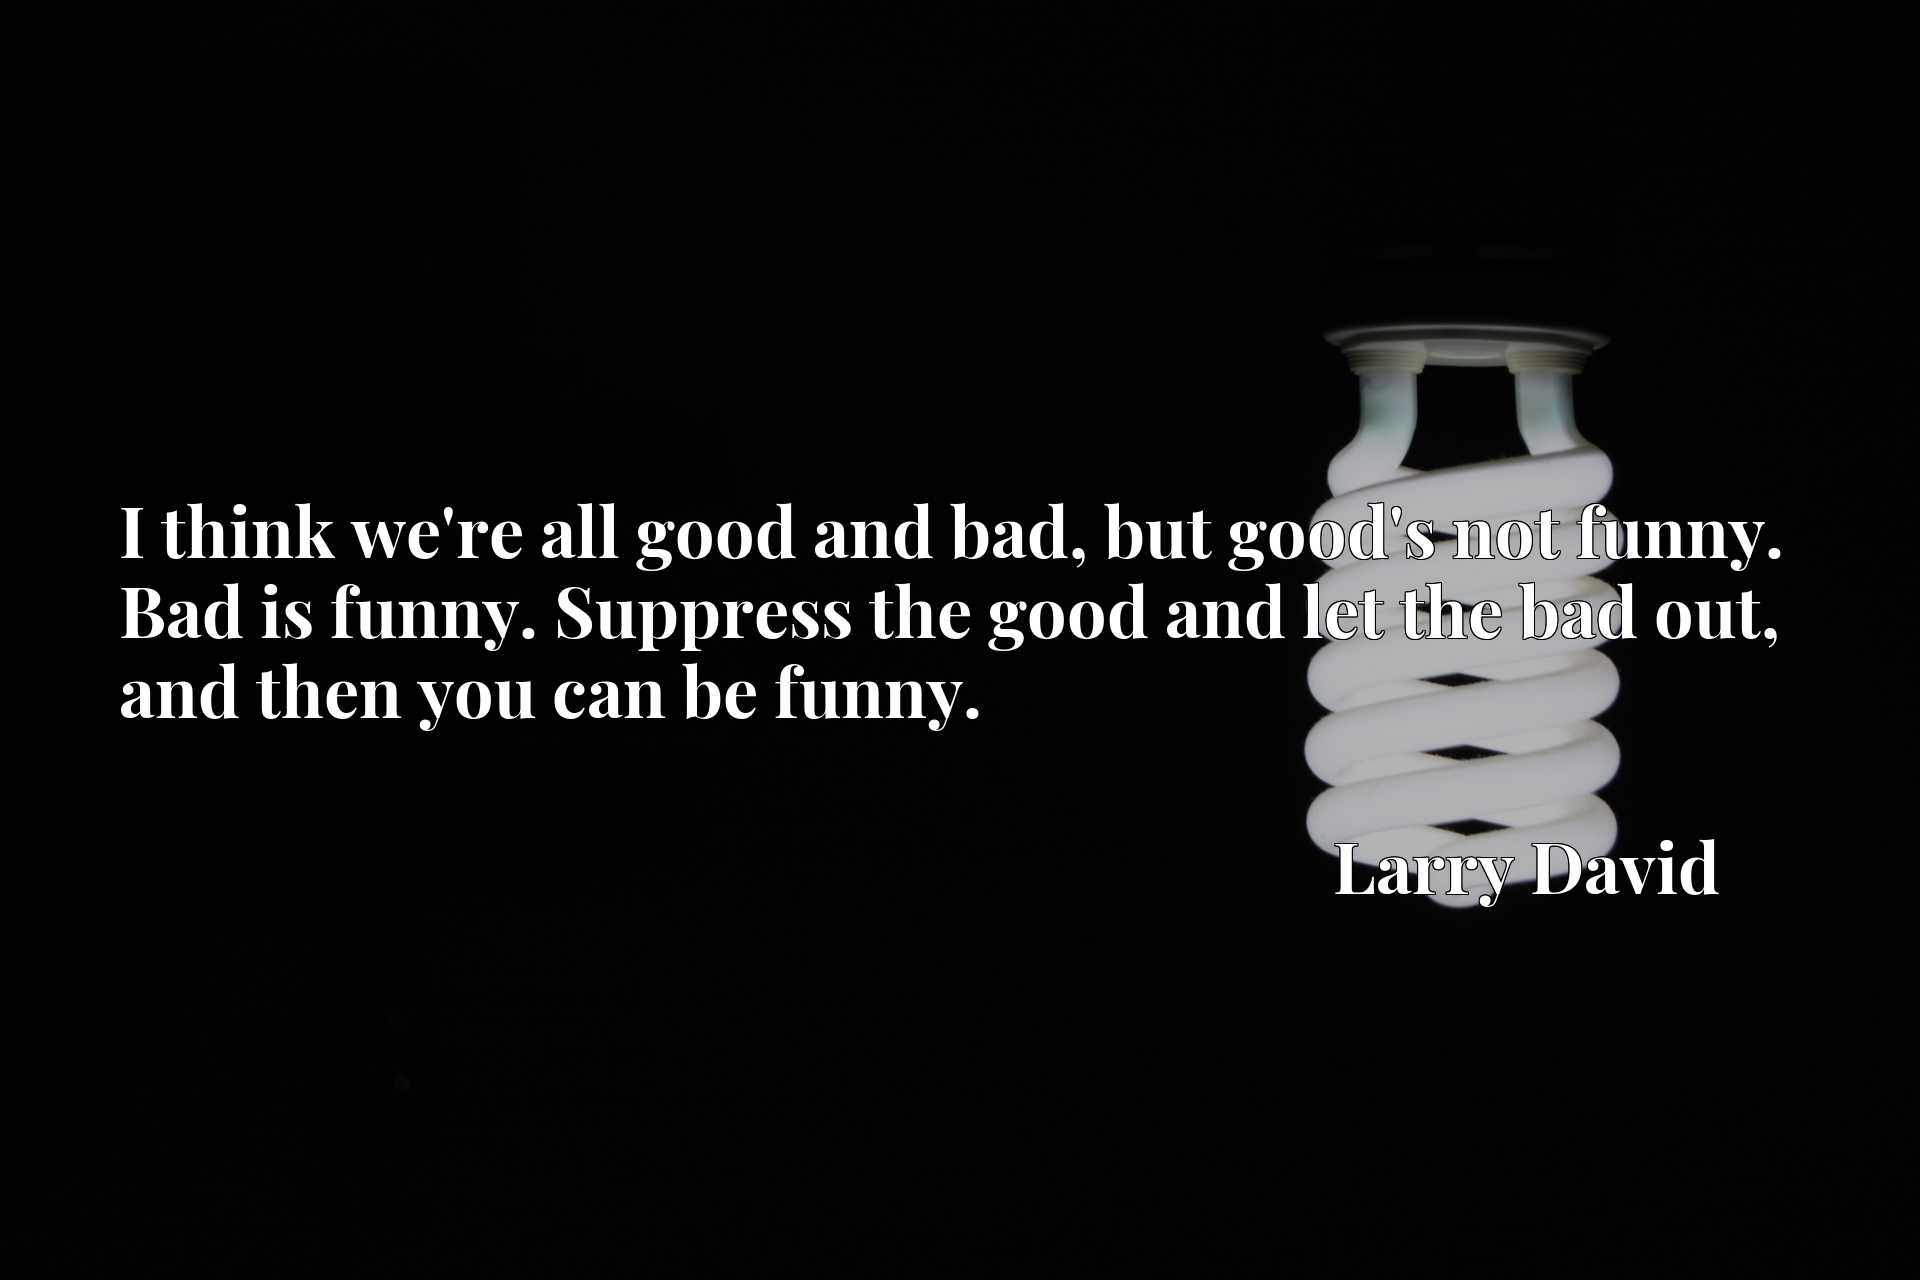 I think we're all good and bad, but good's not funny. Bad is funny. Suppress the good and let the bad out, and then you can be funny.